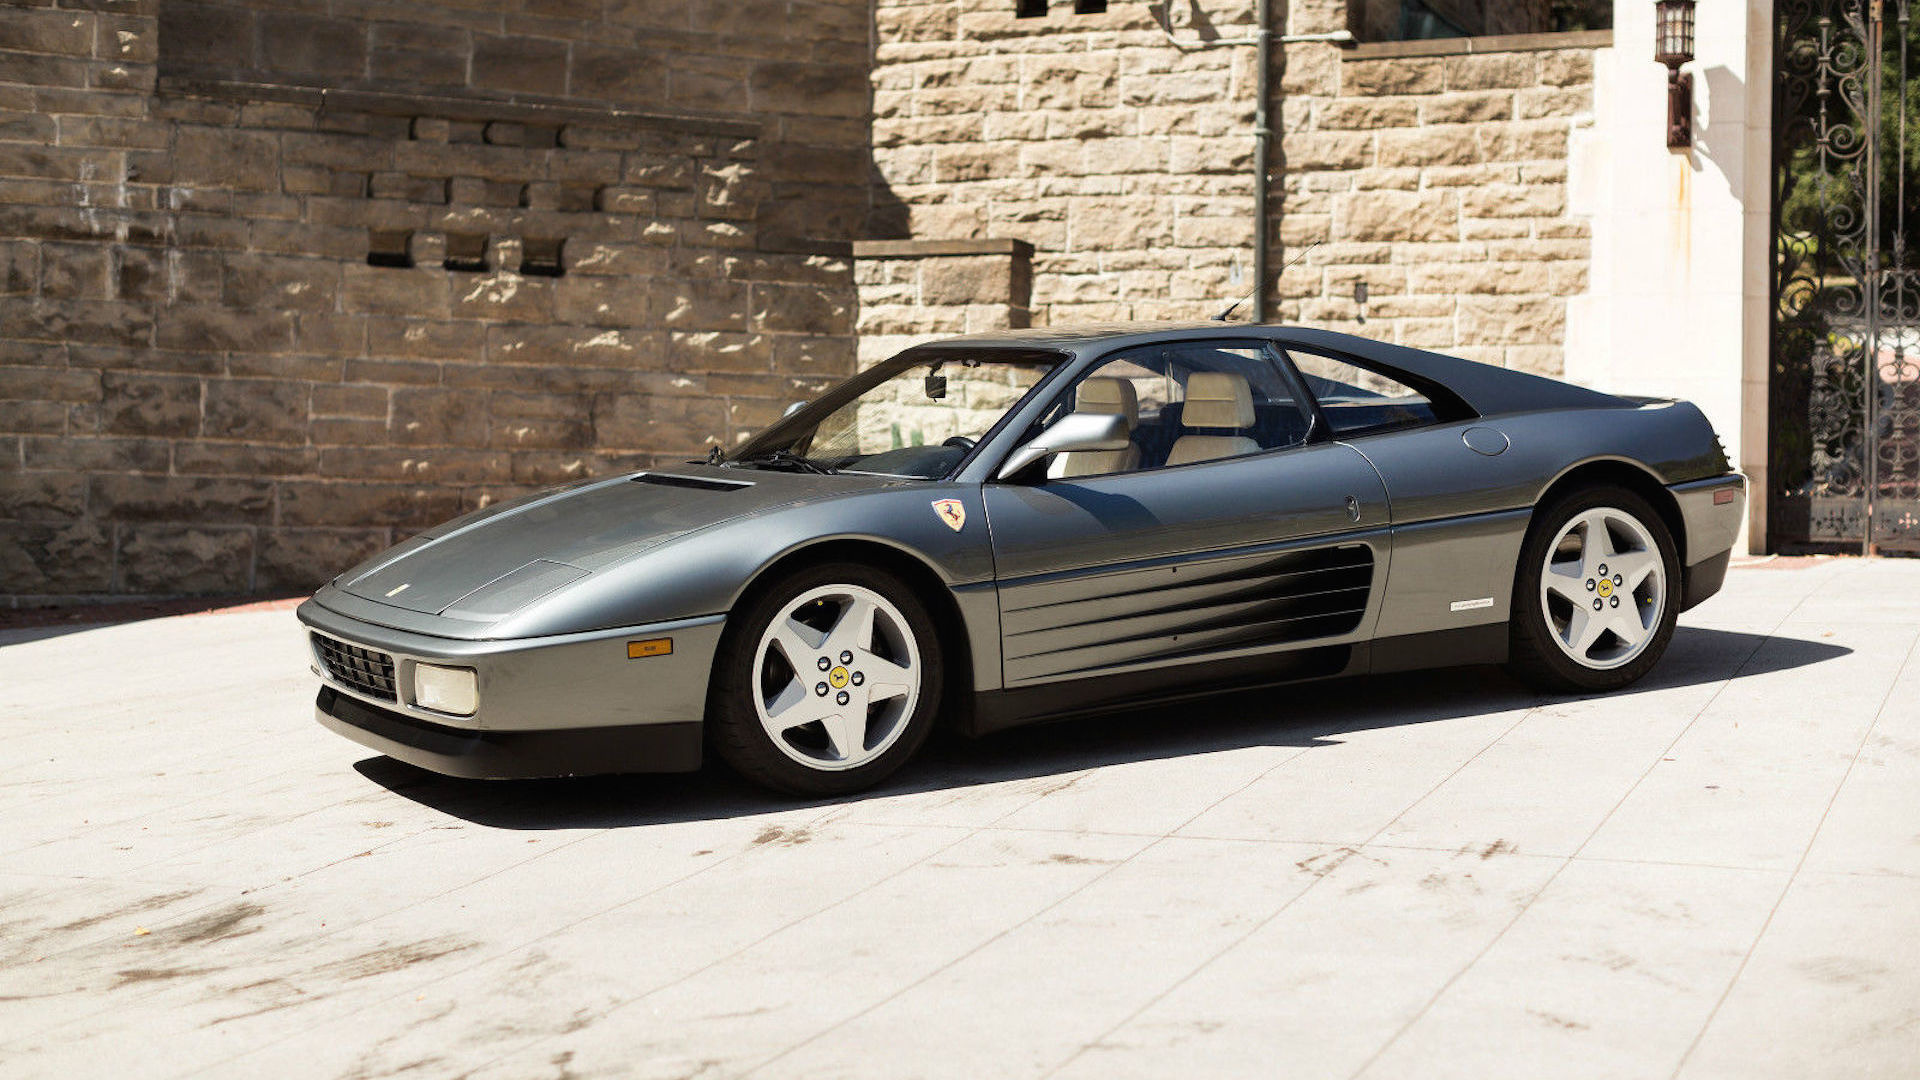 1990 ferrari 348 ebay find more grown up in grigio. Black Bedroom Furniture Sets. Home Design Ideas